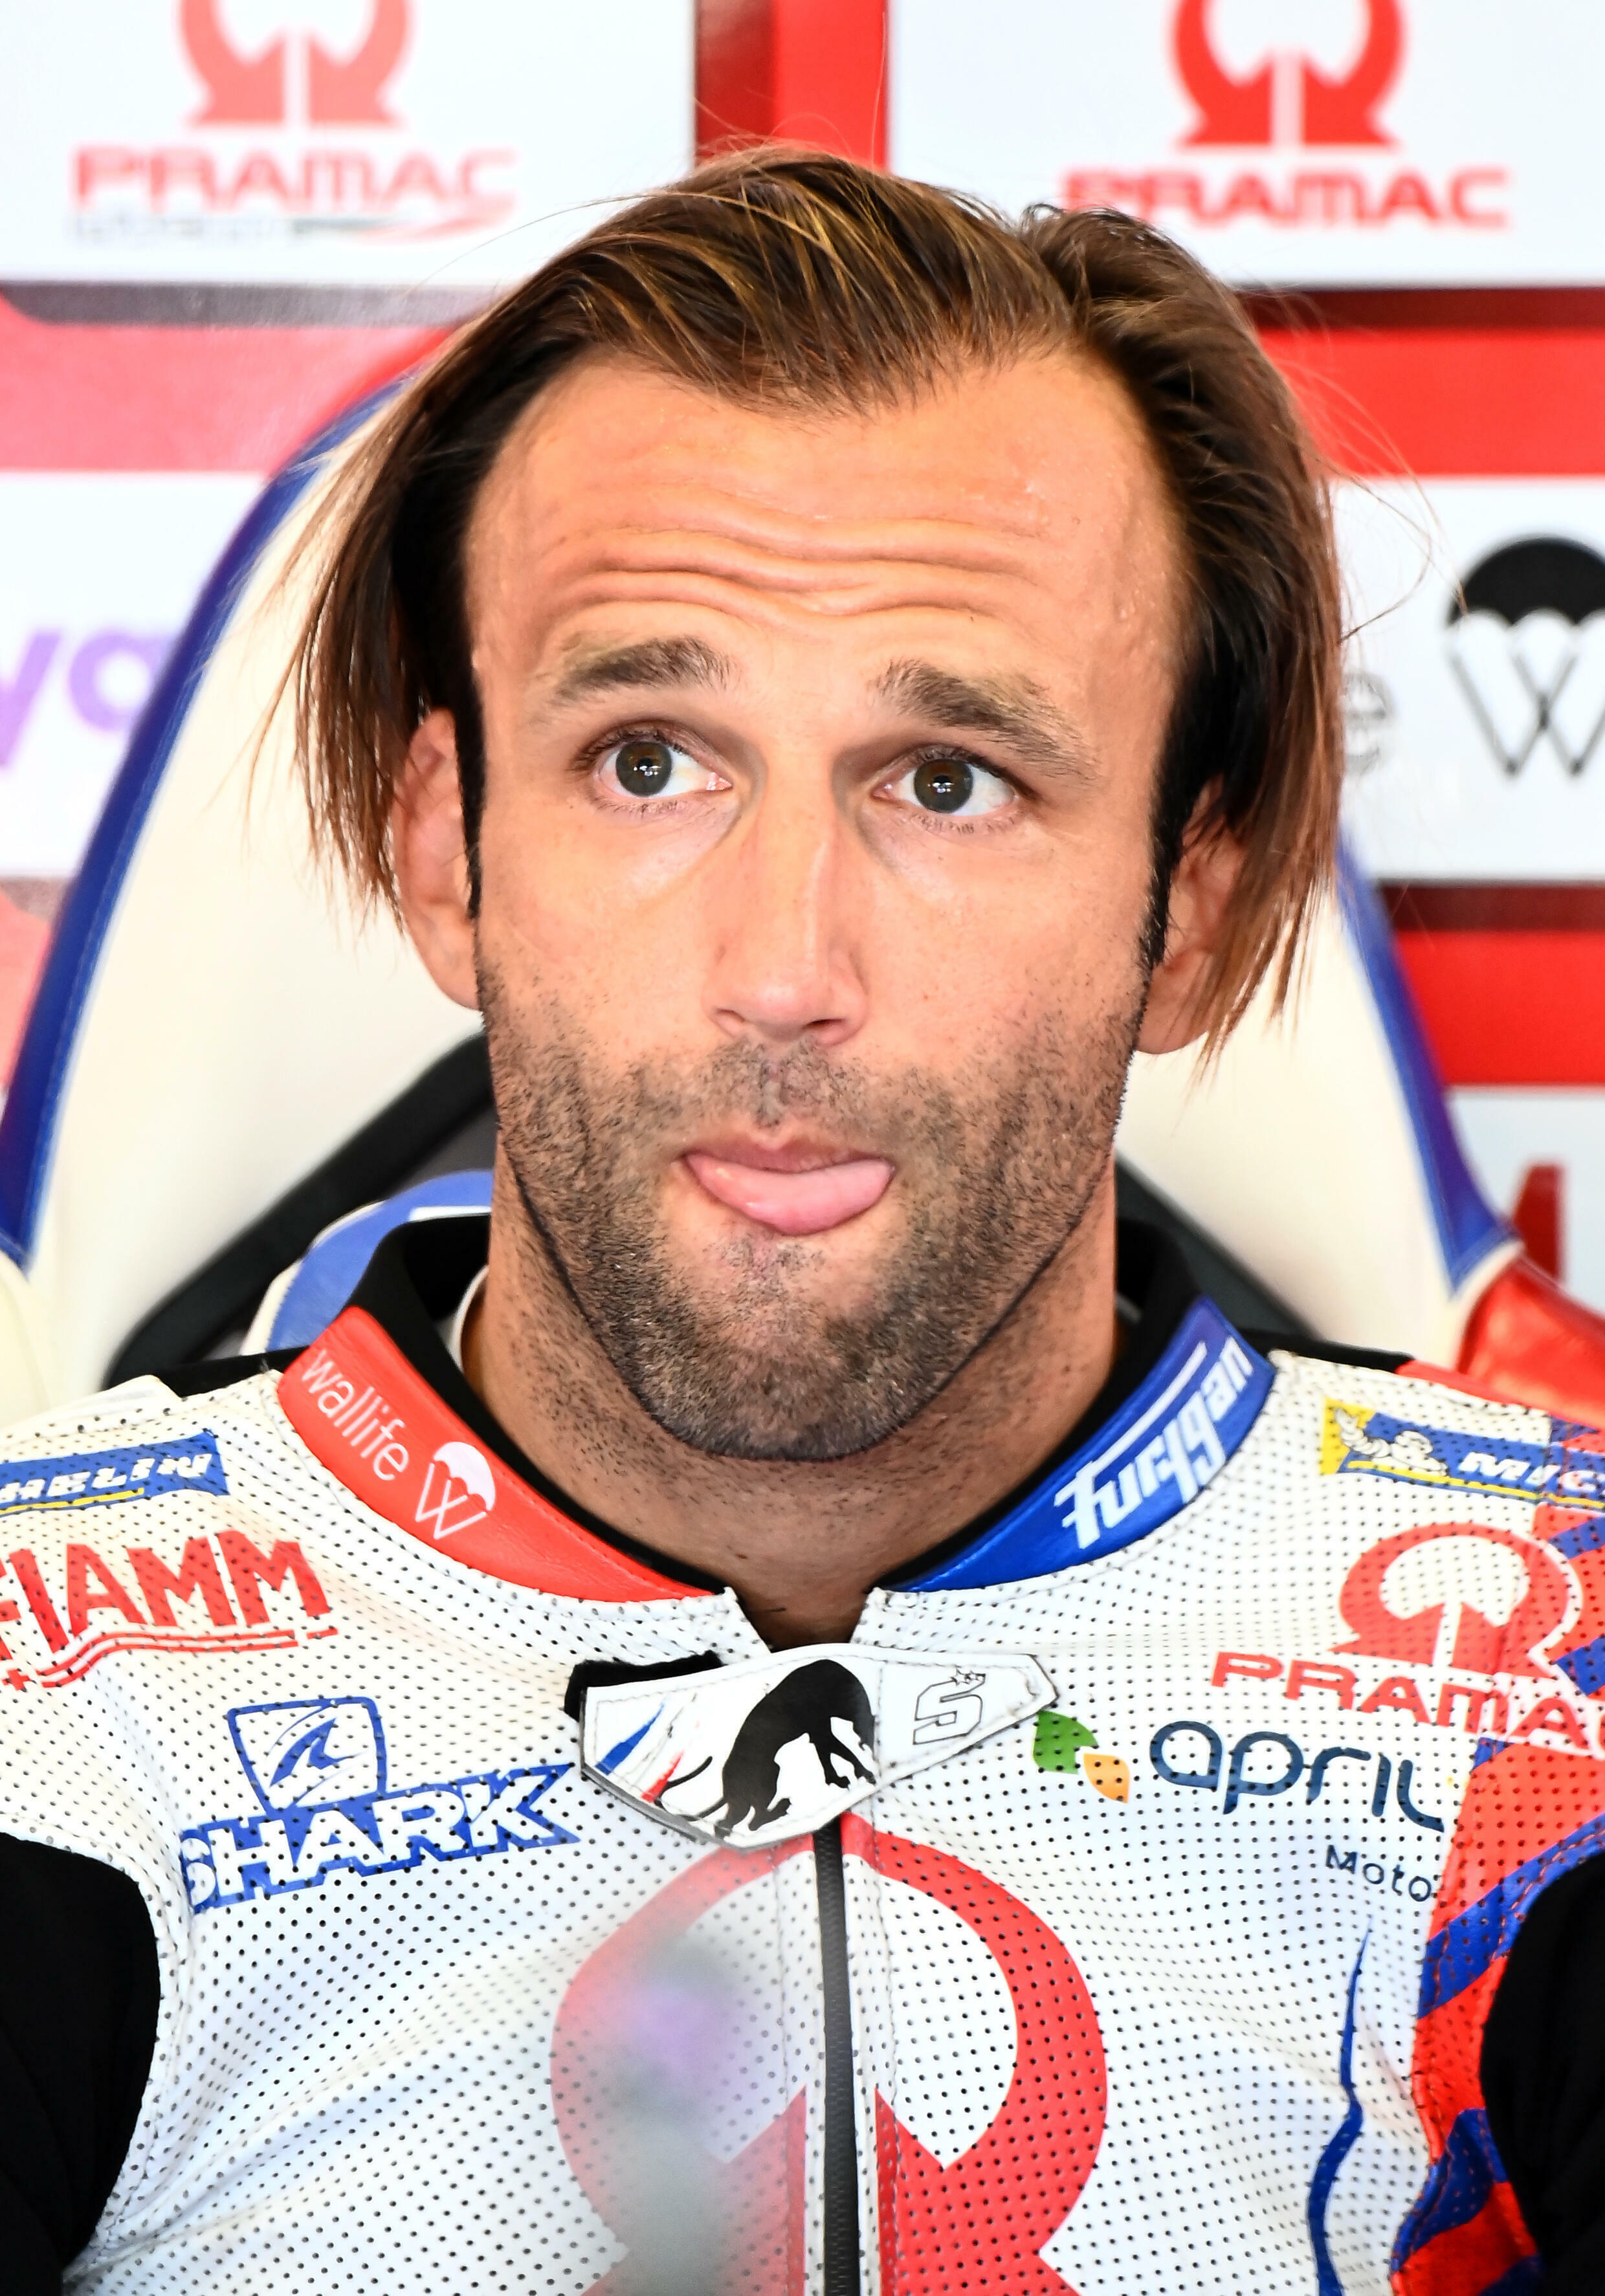 French rider Johann Zarco (Ducati-Pramack), during a break during the third free practice session of the Austrian MotoGP Grand Prix, August 14, 2021 at the Red Bull Circuit in Spielberg.